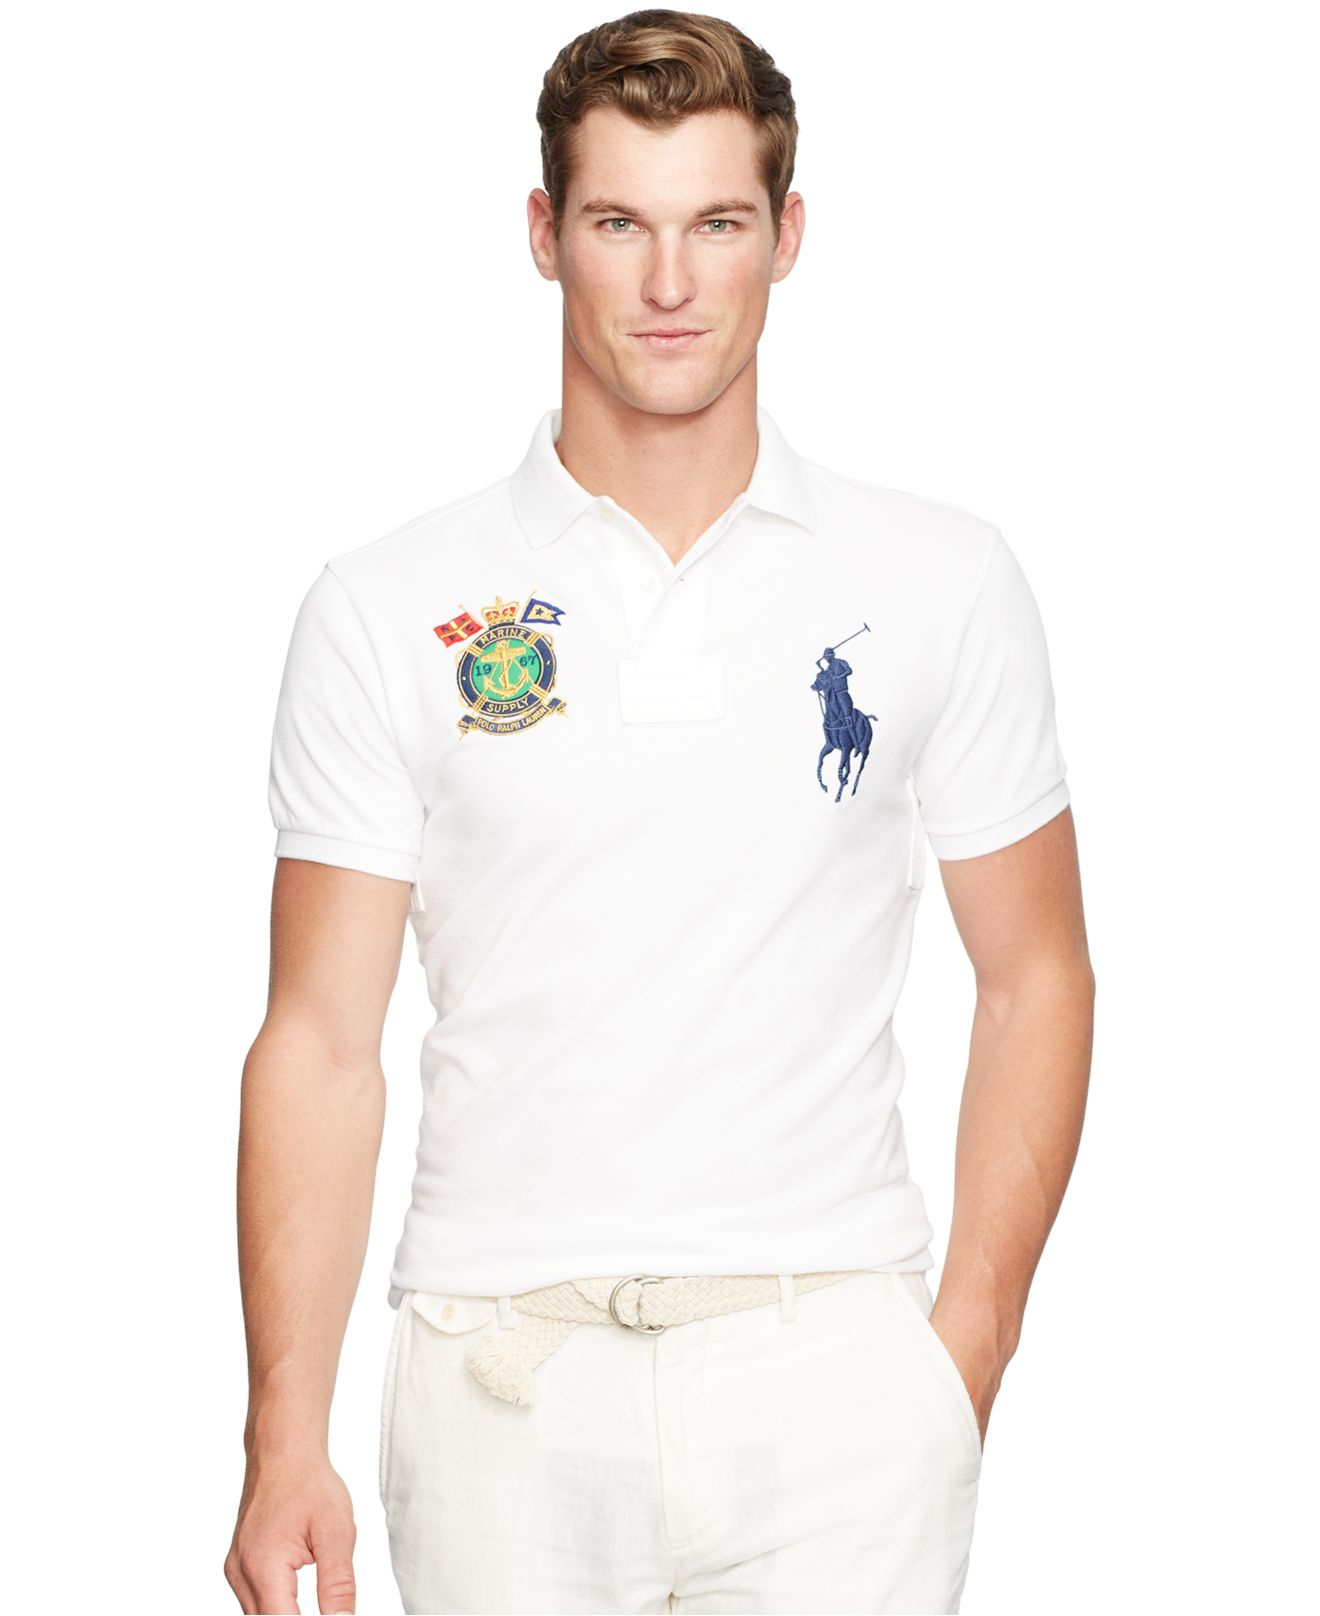 Polo ralph lauren custom fit nautical crest polo shirt in for White fitted polo shirts